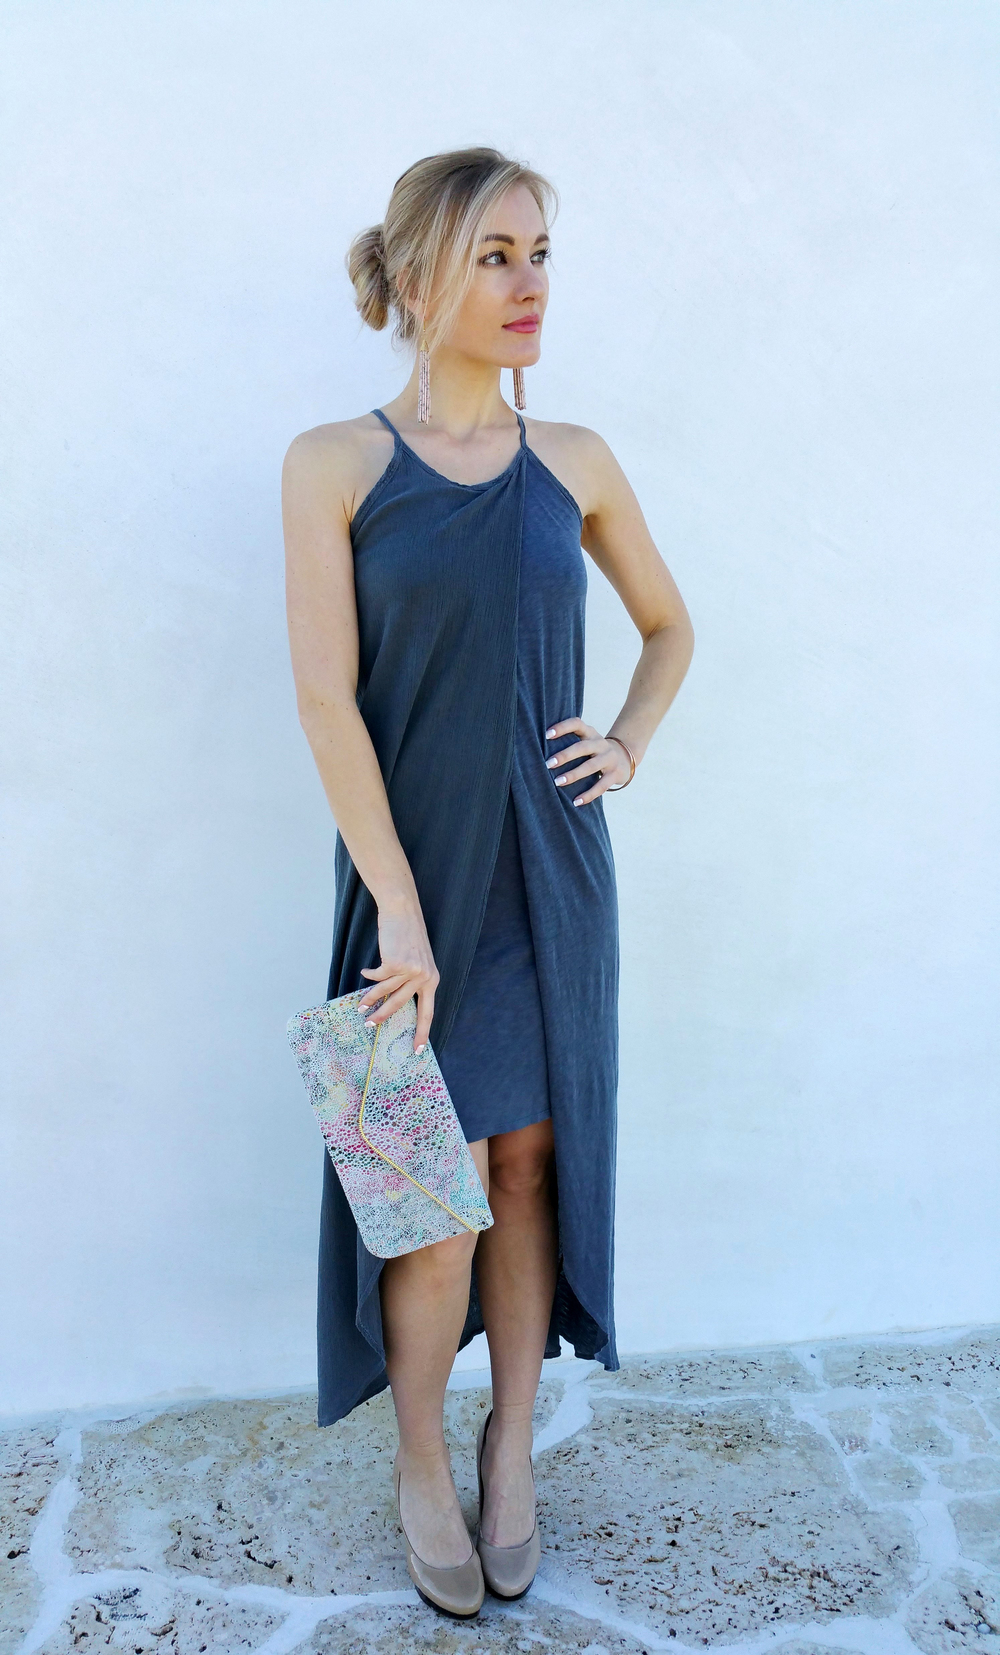 This is how you take the same look from day to night.  Marta is wearing the gray dress by Stateside and I changed her bag to a gorgeous  Coastal Road  clutch, sexy tassel earrings by Vintage Green and heels to create an evening look with the same dress.